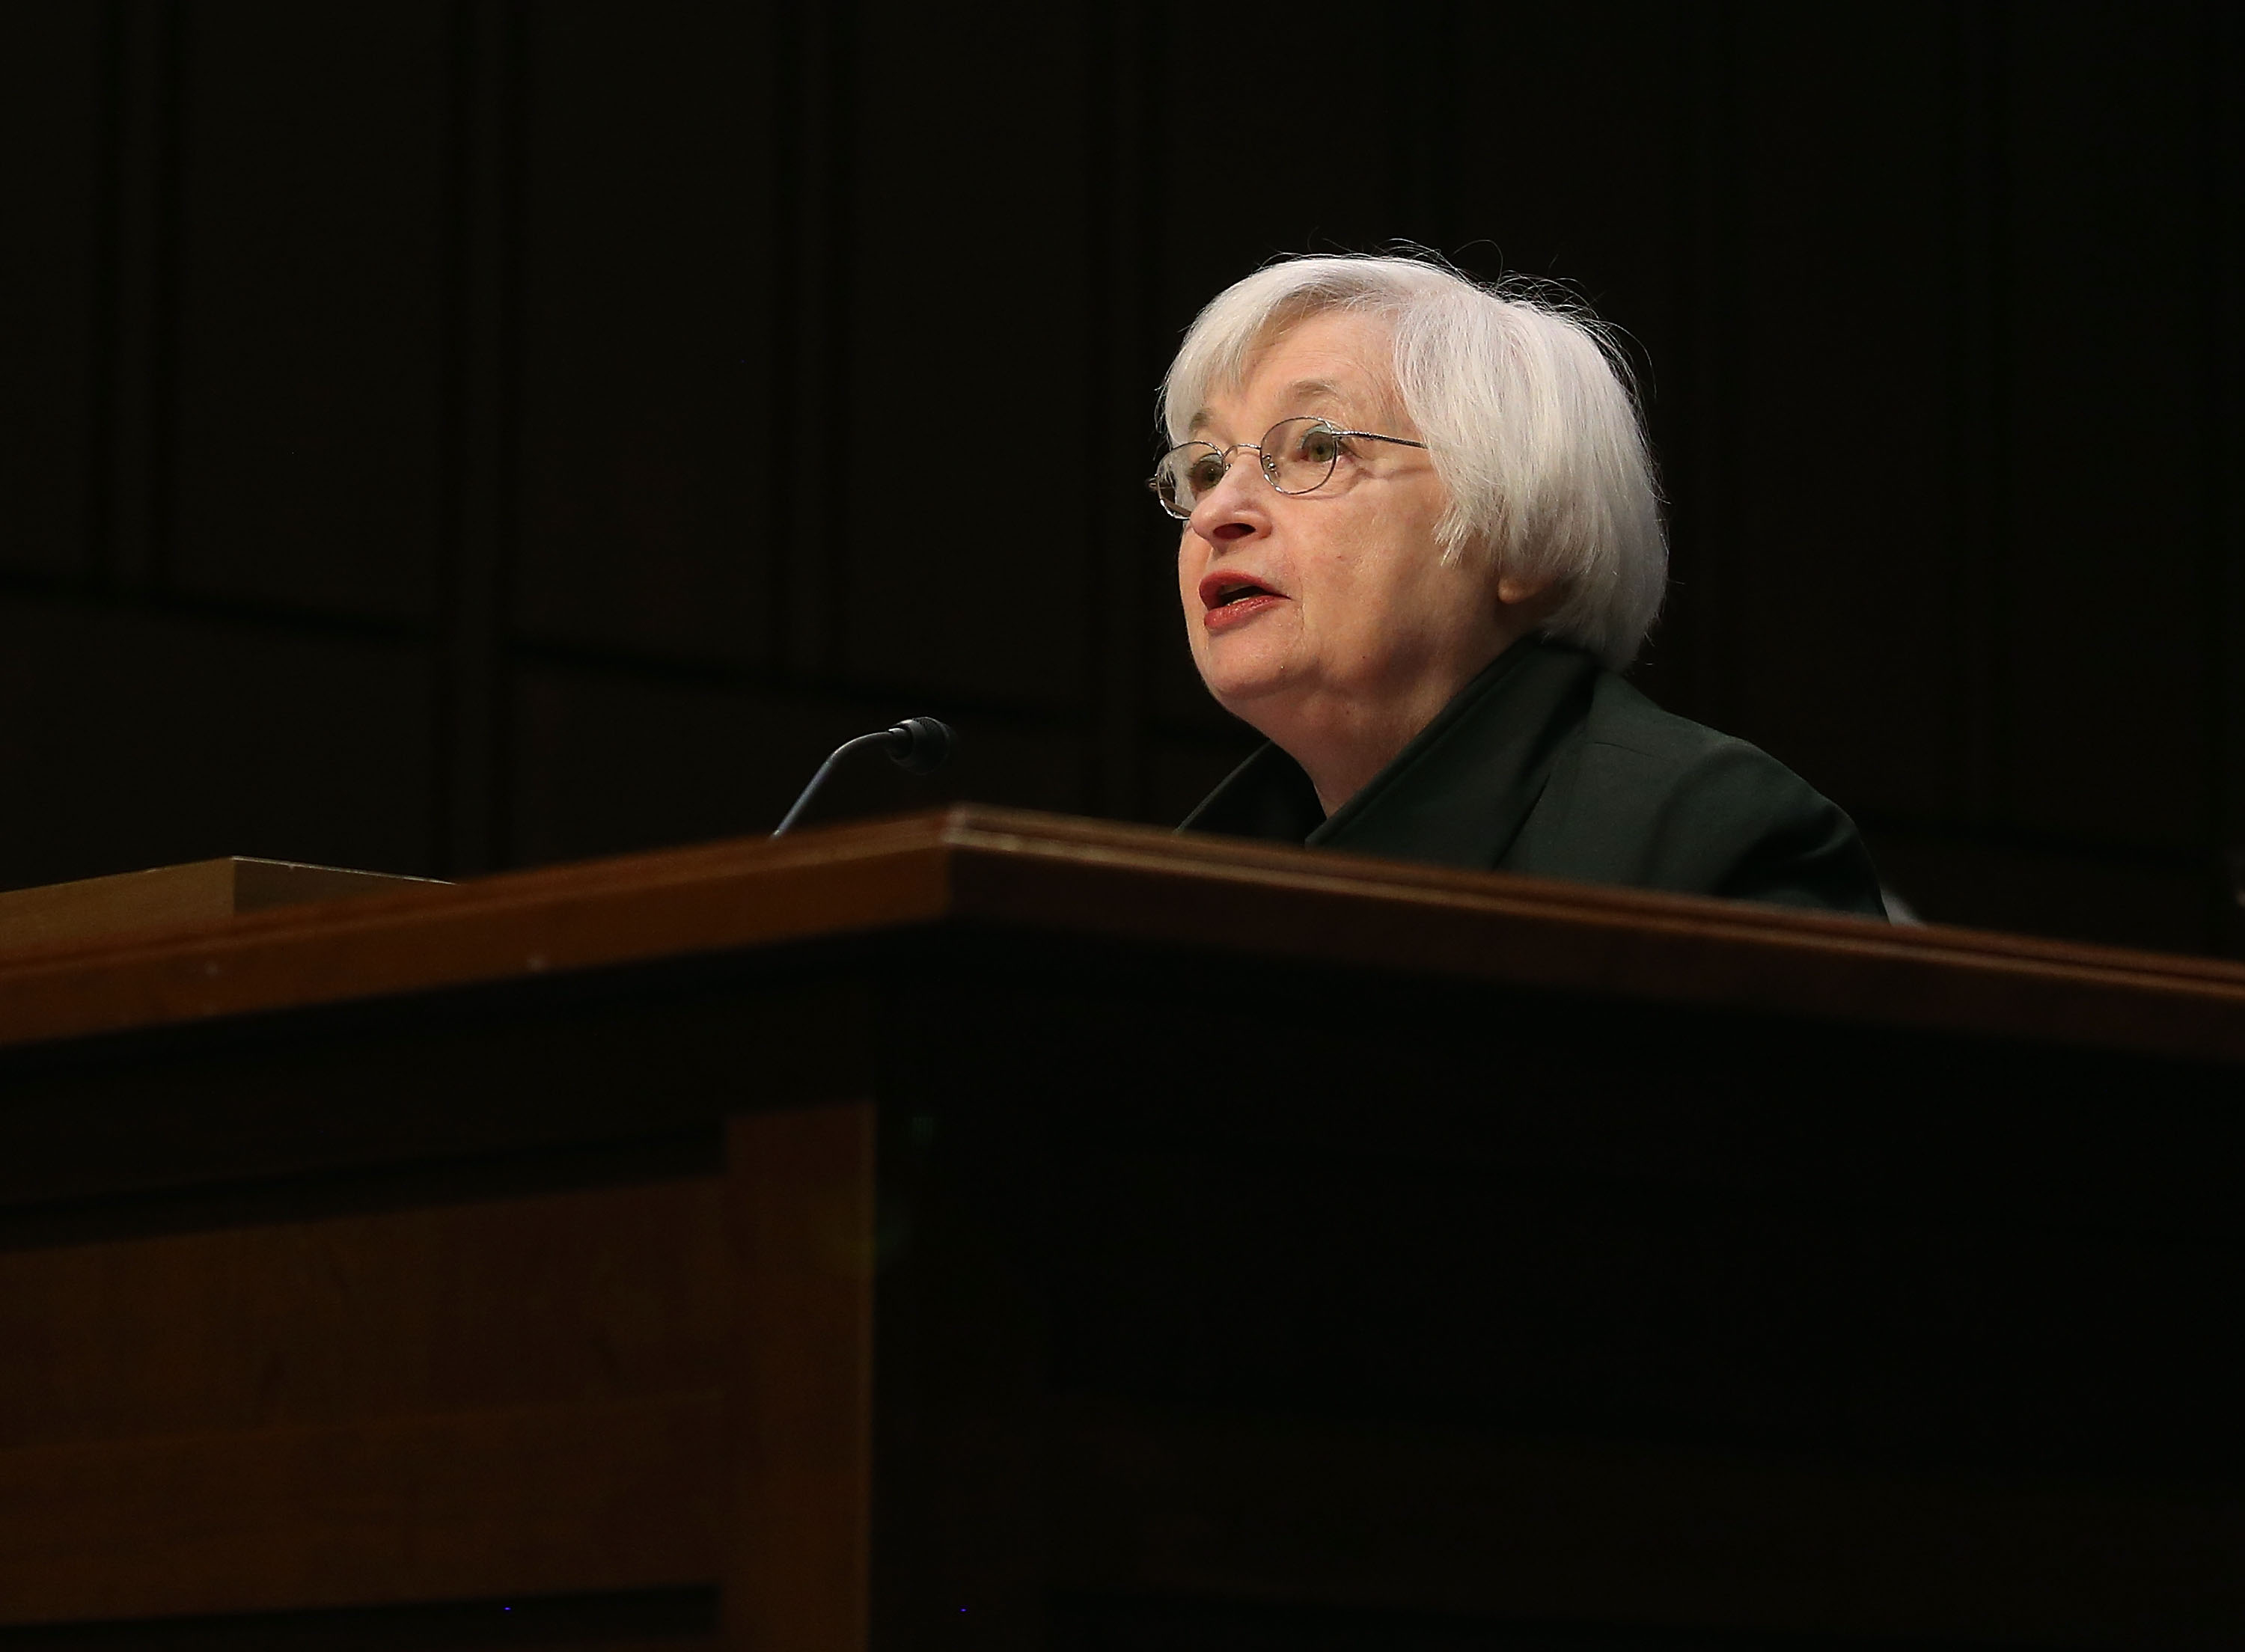 Yellen Testifies At Joint Economic Committee Hearing On Economic Outlook